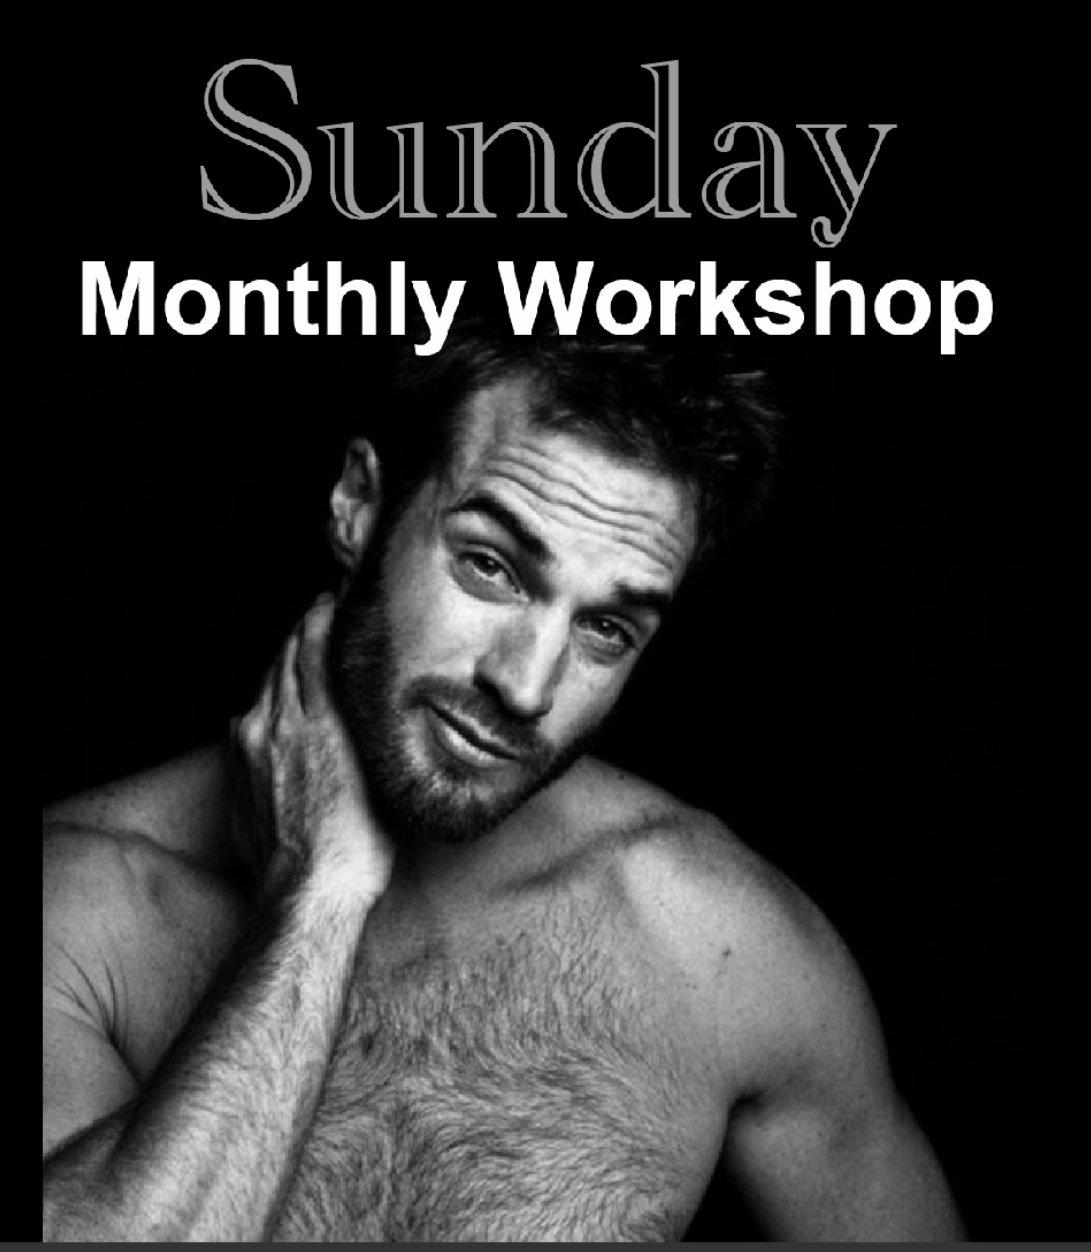 Sunday Workshop